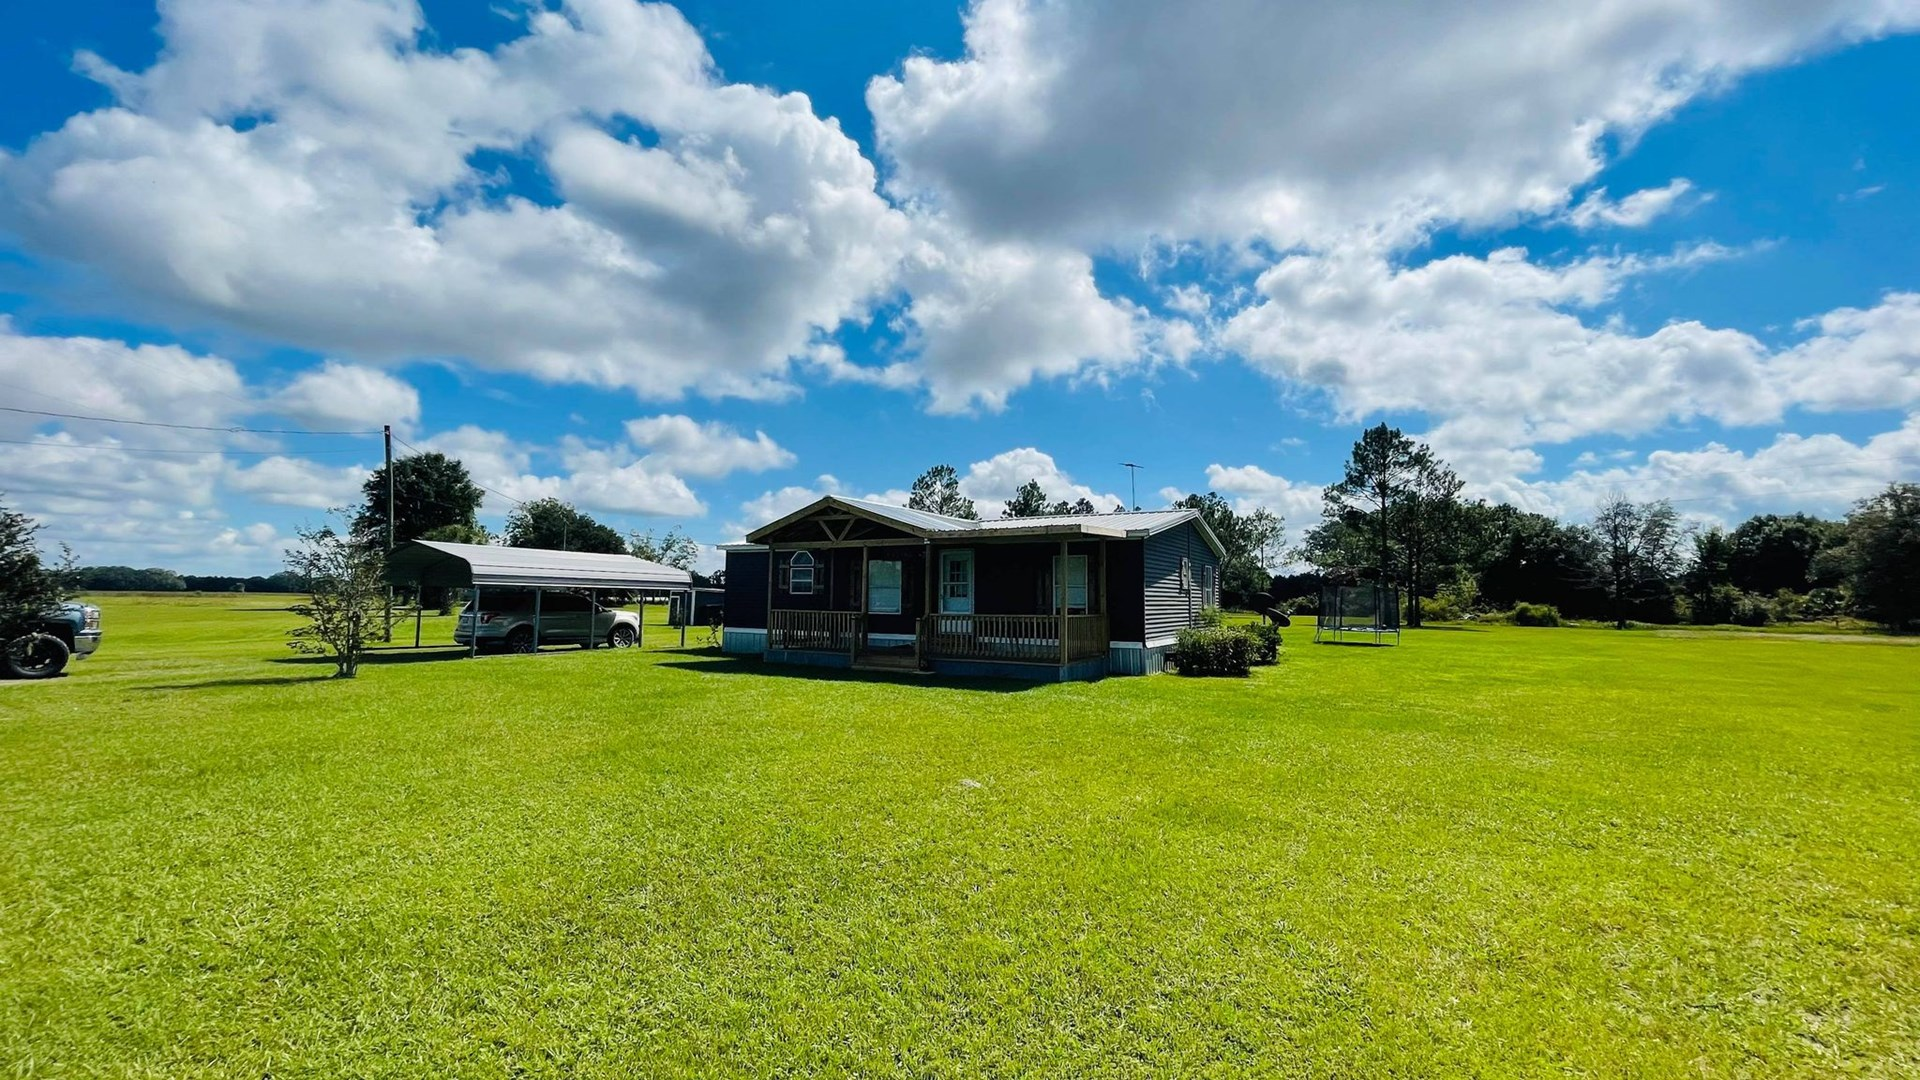 COUNTRY HOME IN CROSS CITY FLORIDA!